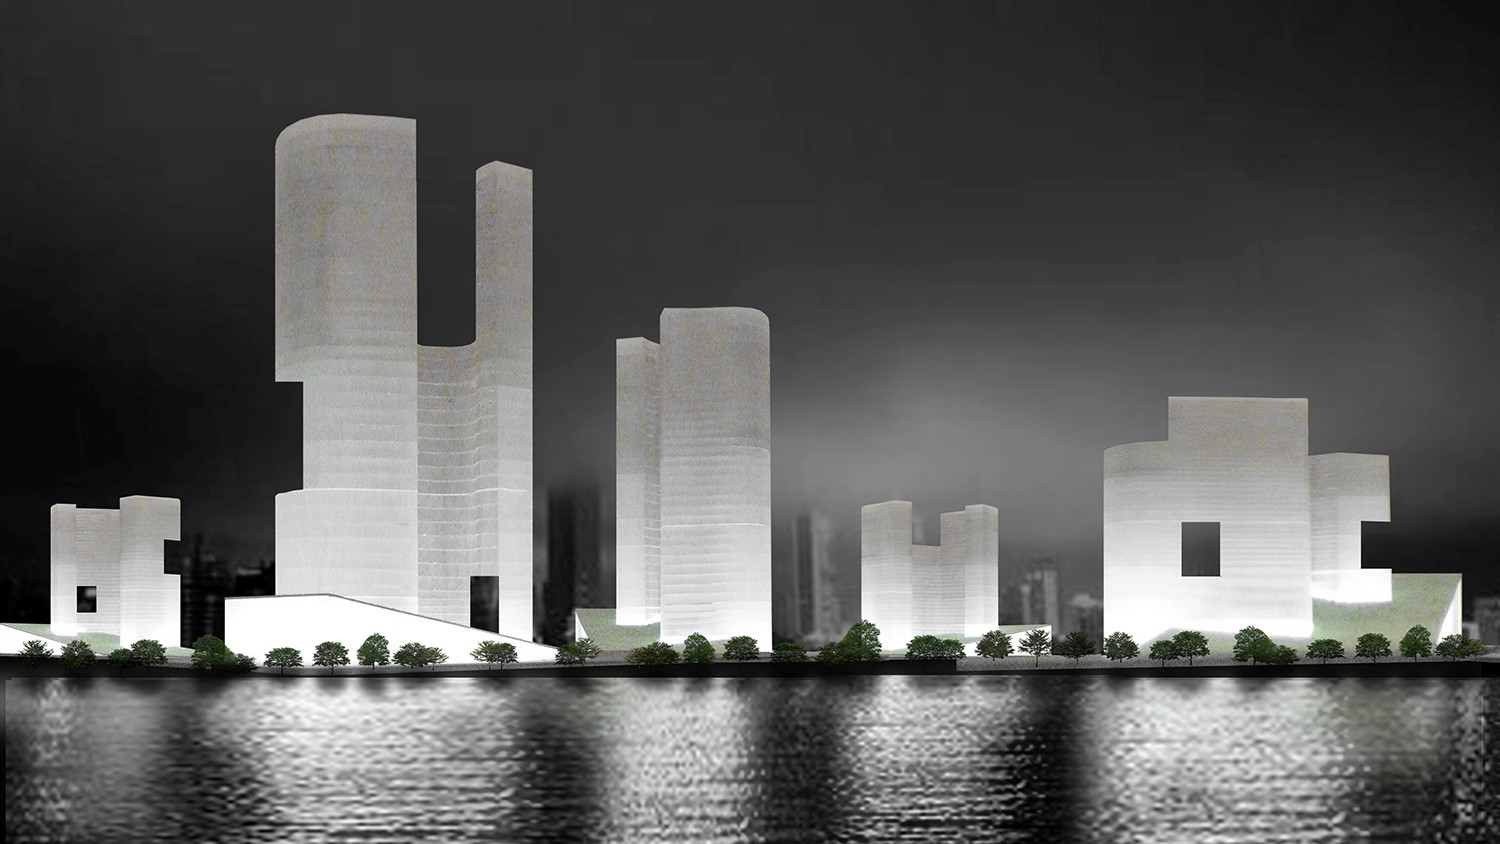 https://stevenholl.sfo2.digitaloceanspaces.com/uploads/projects/project-images/Wuhan_Model3_SHA_WH.jpg